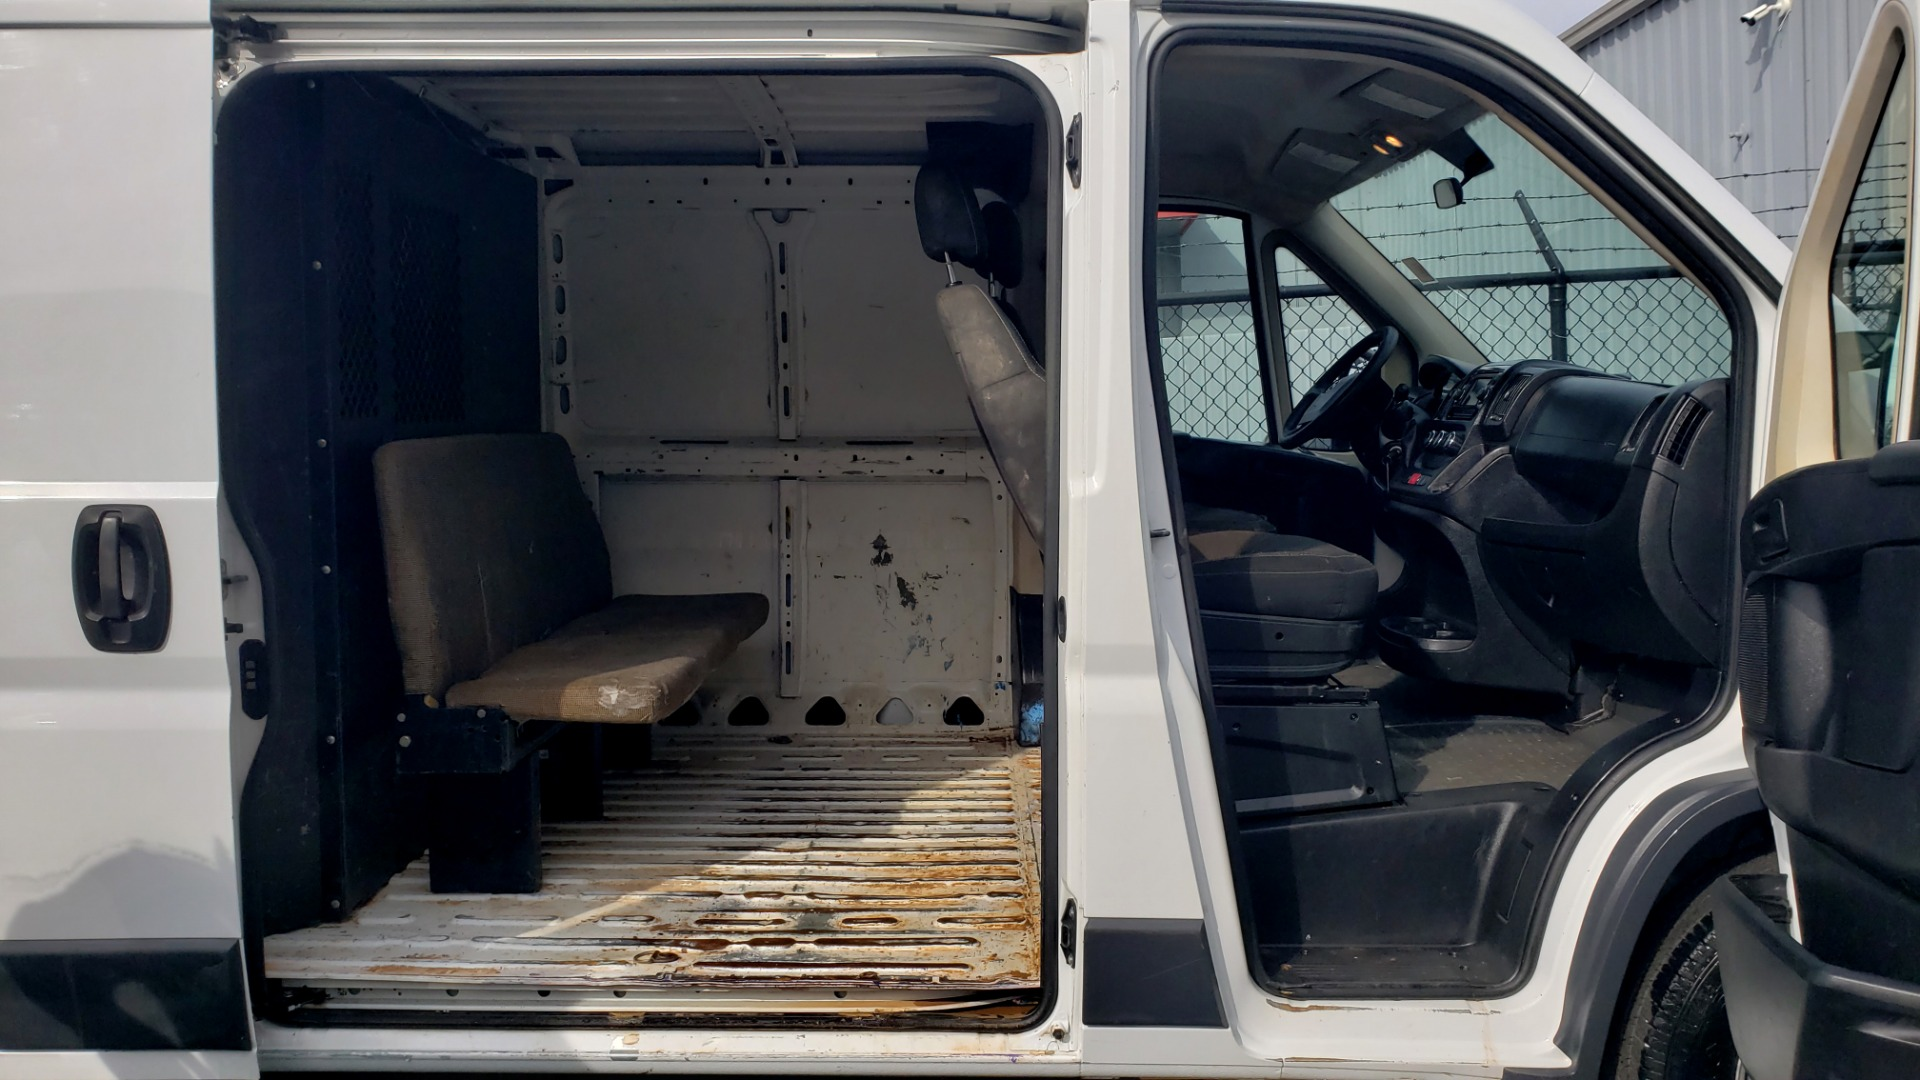 Used 2016 Ram PROMASTER CARGO VAN 136 WB / LOW ROOF / 3.6L V6 / 6-SPD AUTO / REARVIEW for sale $17,500 at Formula Imports in Charlotte NC 28227 7